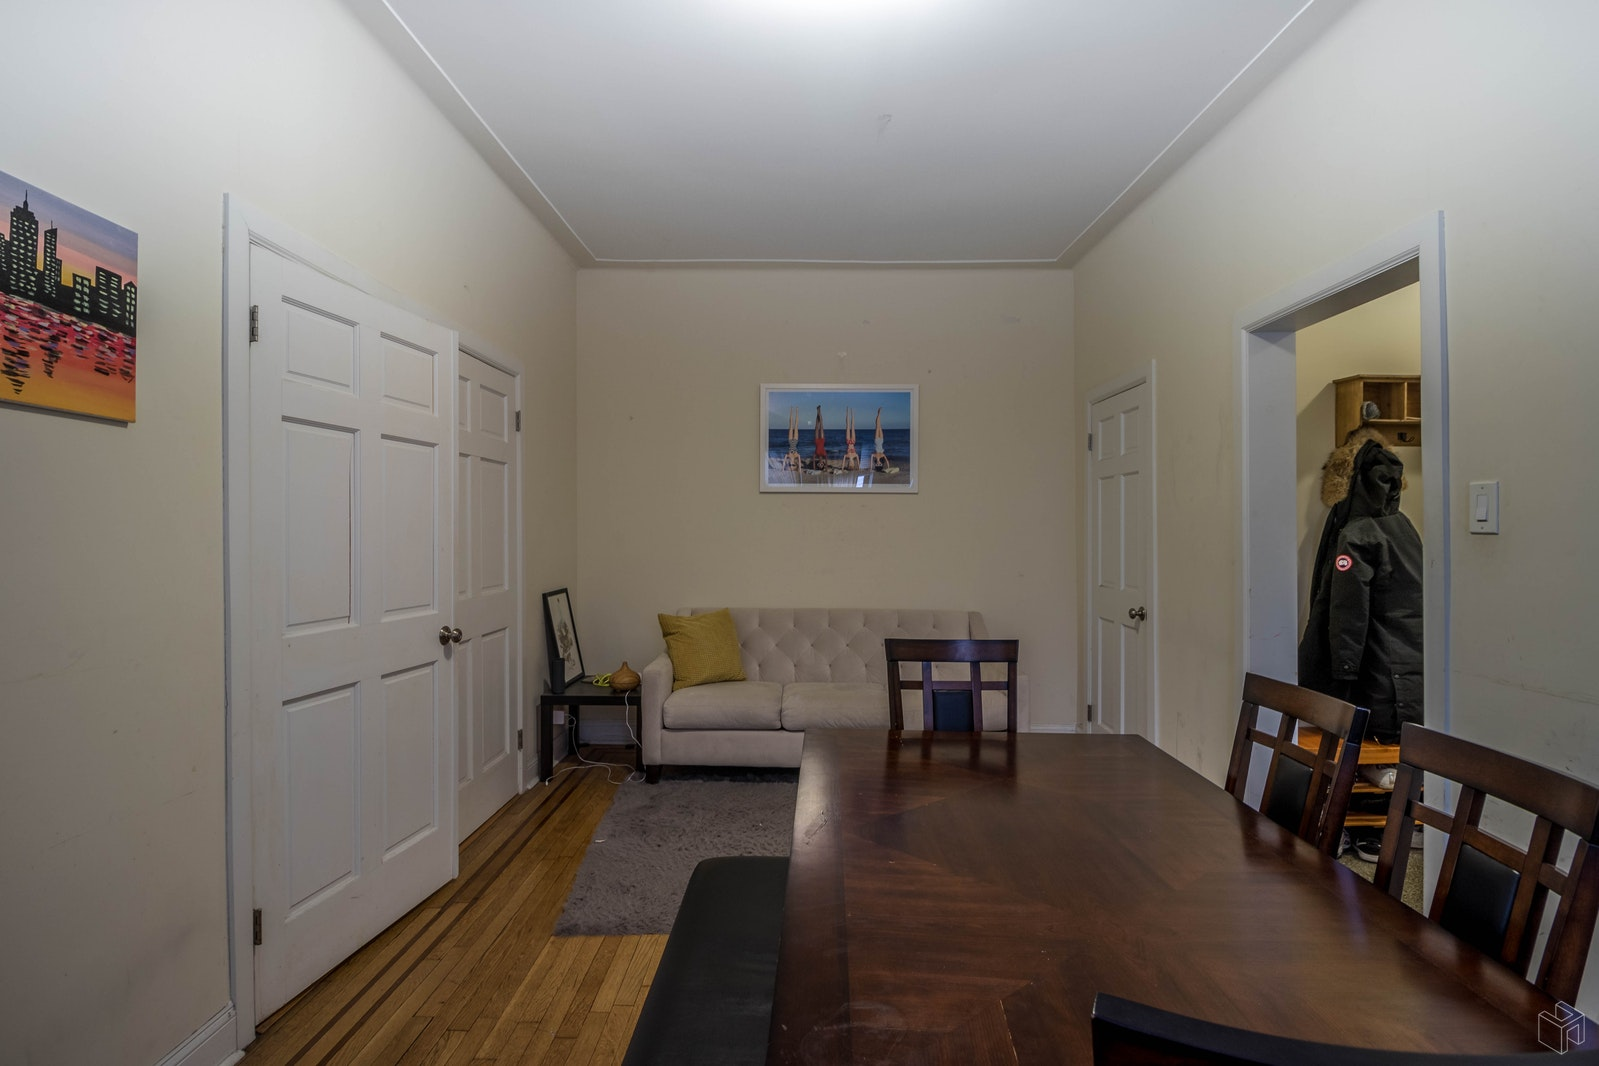 131 East 29th Street 2, Gramercy Park, NYC, 10016, Price Not Disclosed, Rented Property, Halstead Real Estate, Photo 6